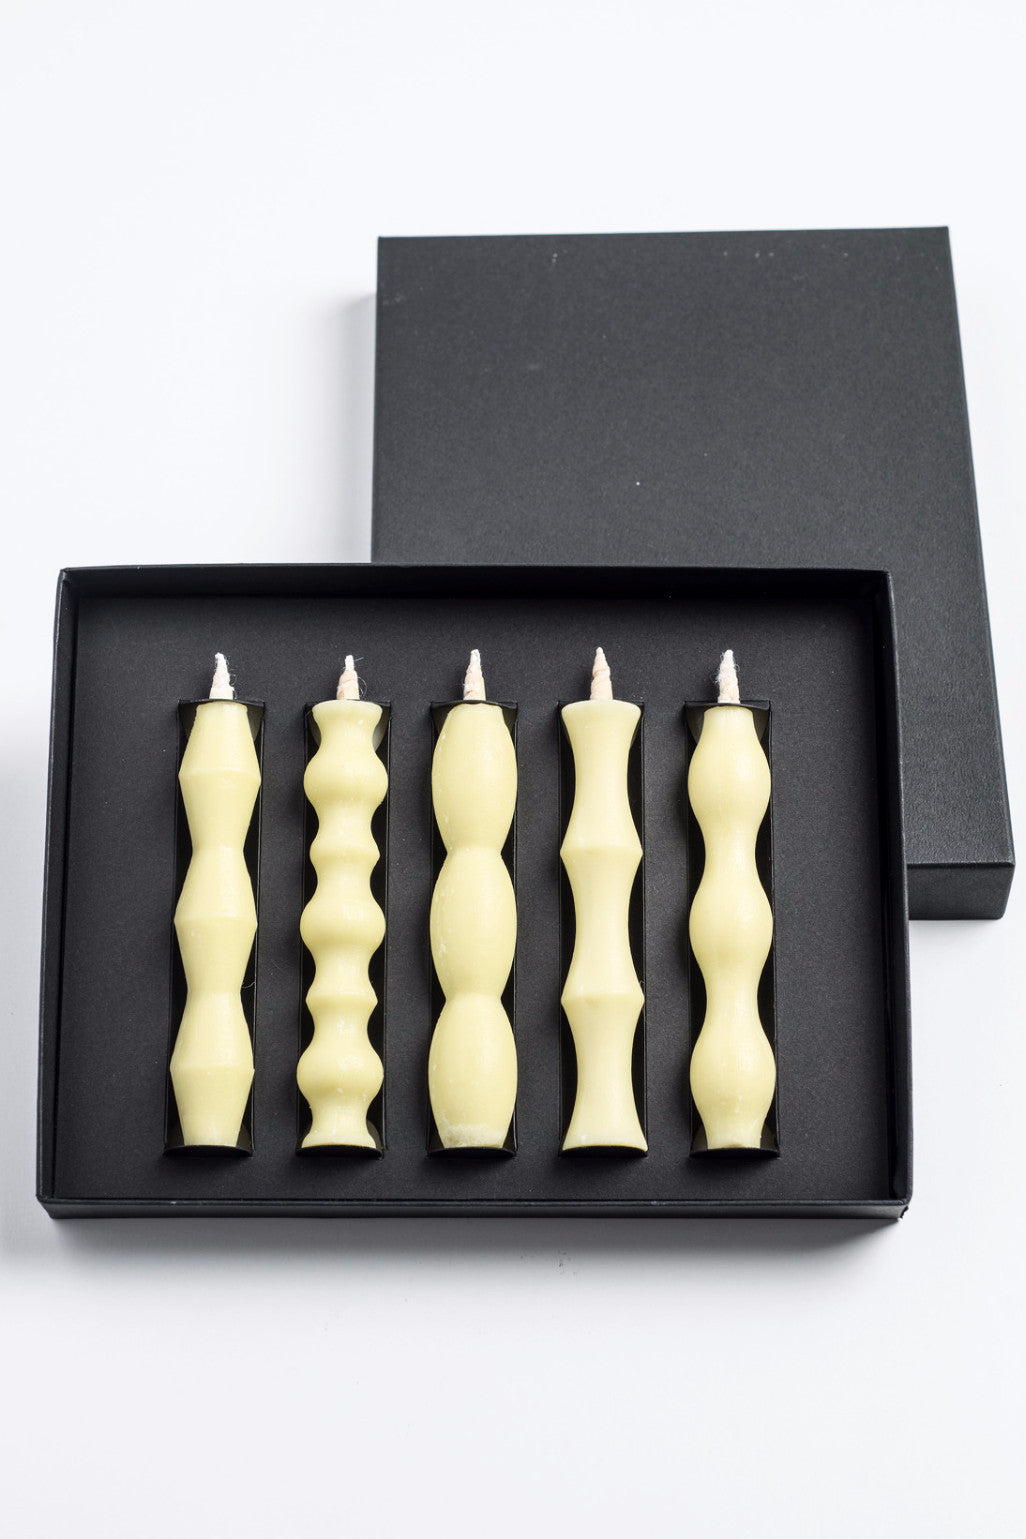 JAPANESE NANAO handmade boxed candle set